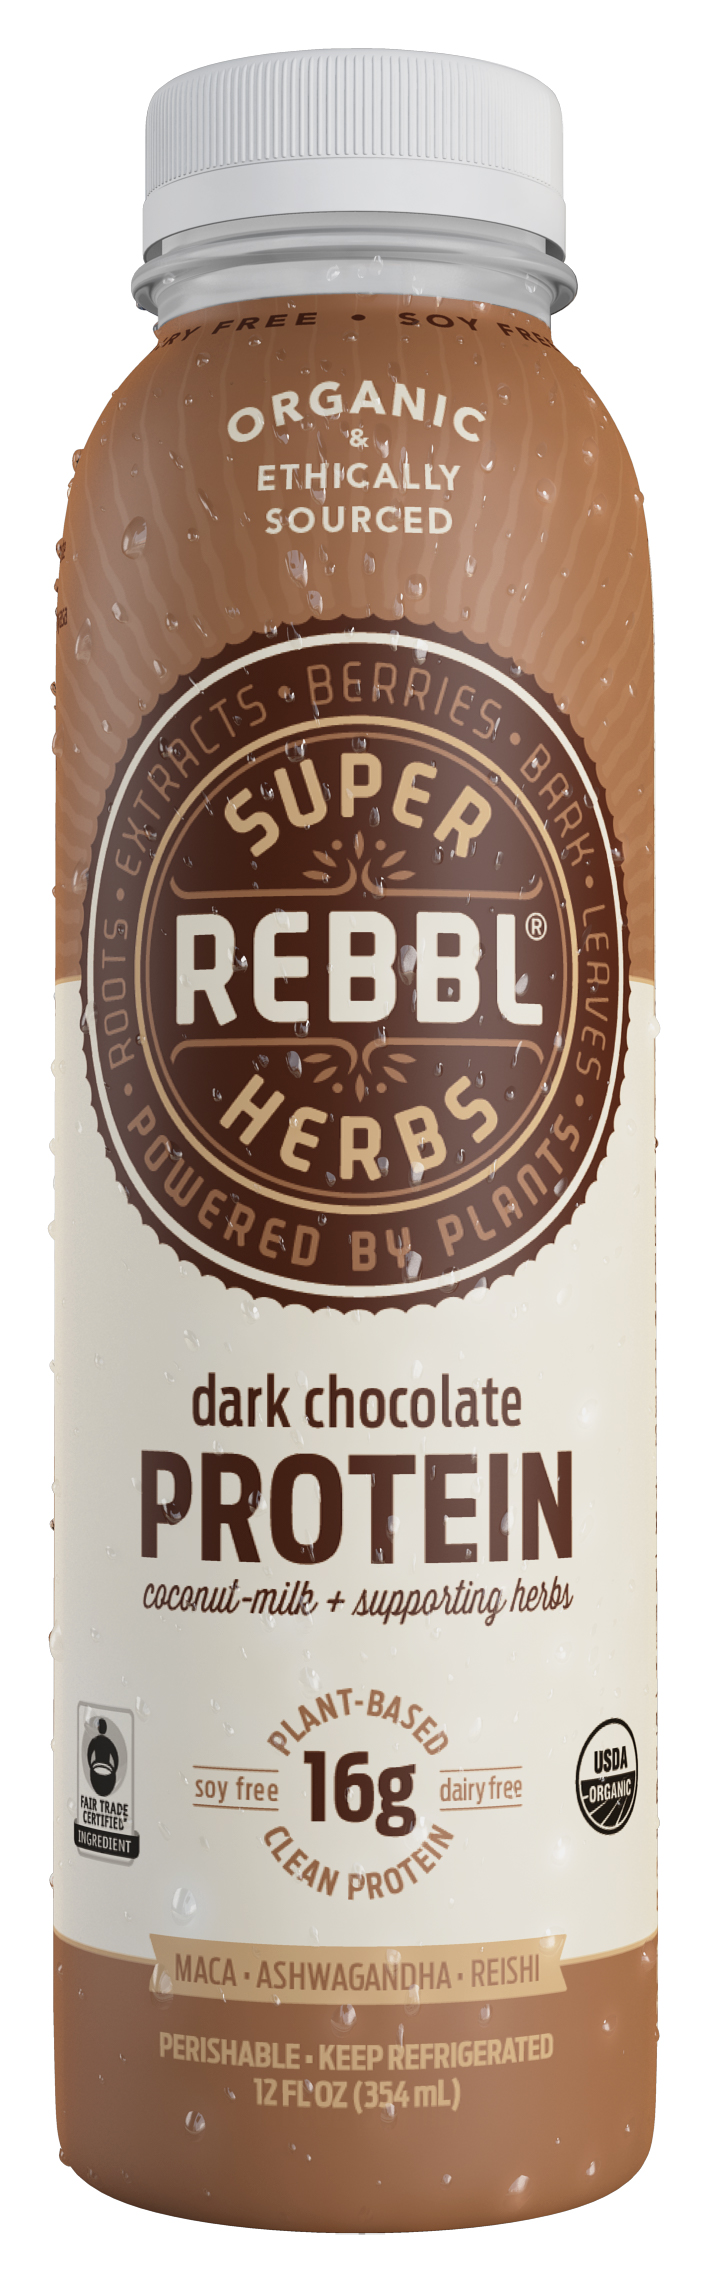 Rebbl Chocolate Protein Smoothie. I need chocolate daily. But I also want better nutrition. This is often a way to accomplish both. Too often smoothies don't provide enough protein or it is from a source that I don't approve. These are plant-based, nutrient balanced and are dairy-free better liquid nutrition which means they are perfect for me on a stressful day because during stress the body doesn't prioritize digestion so liquids are a better nutrition win! //Ashley Koff, RD and founder of Ashleykoffapproved.com// (REBBL)